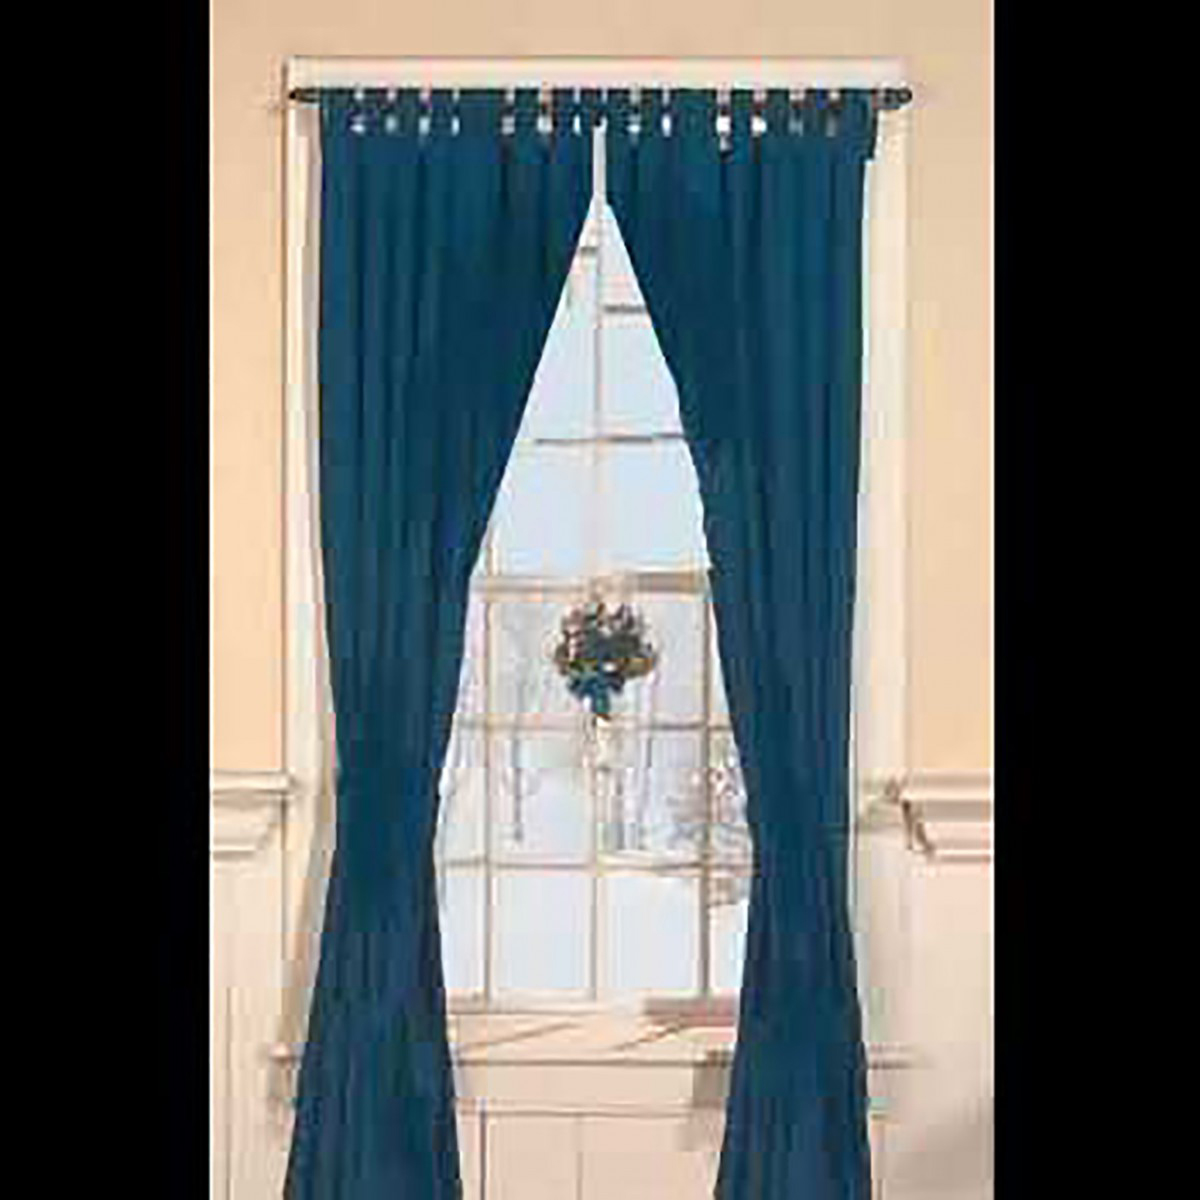 Curtains Navy 100% Cotton Tab Top Curtains 84 x 80 Window Curtain Curtain Curtains